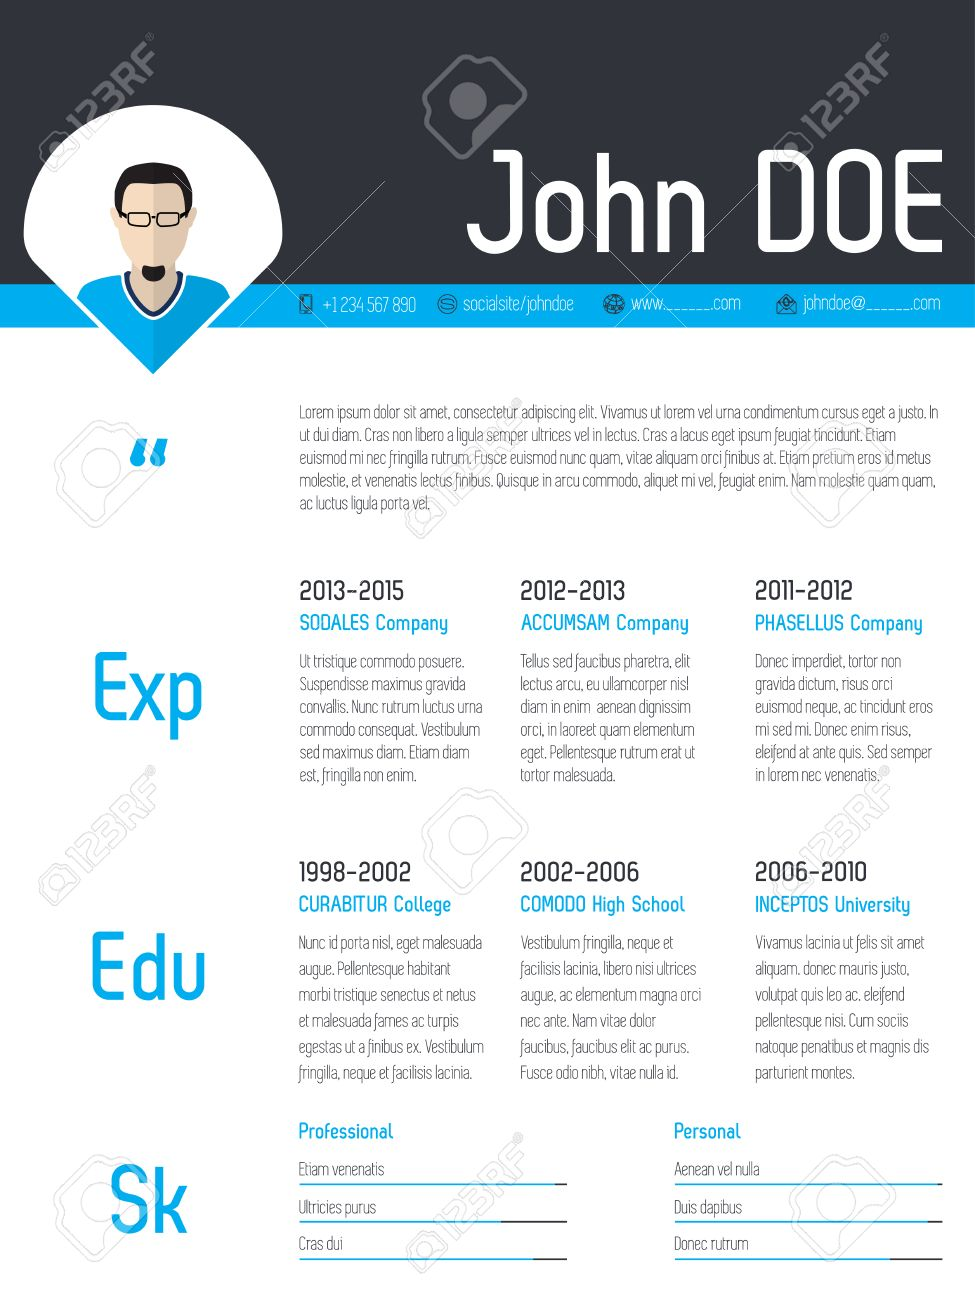 Modern Resume Cv Curriculum Vitae Template Design With Photo